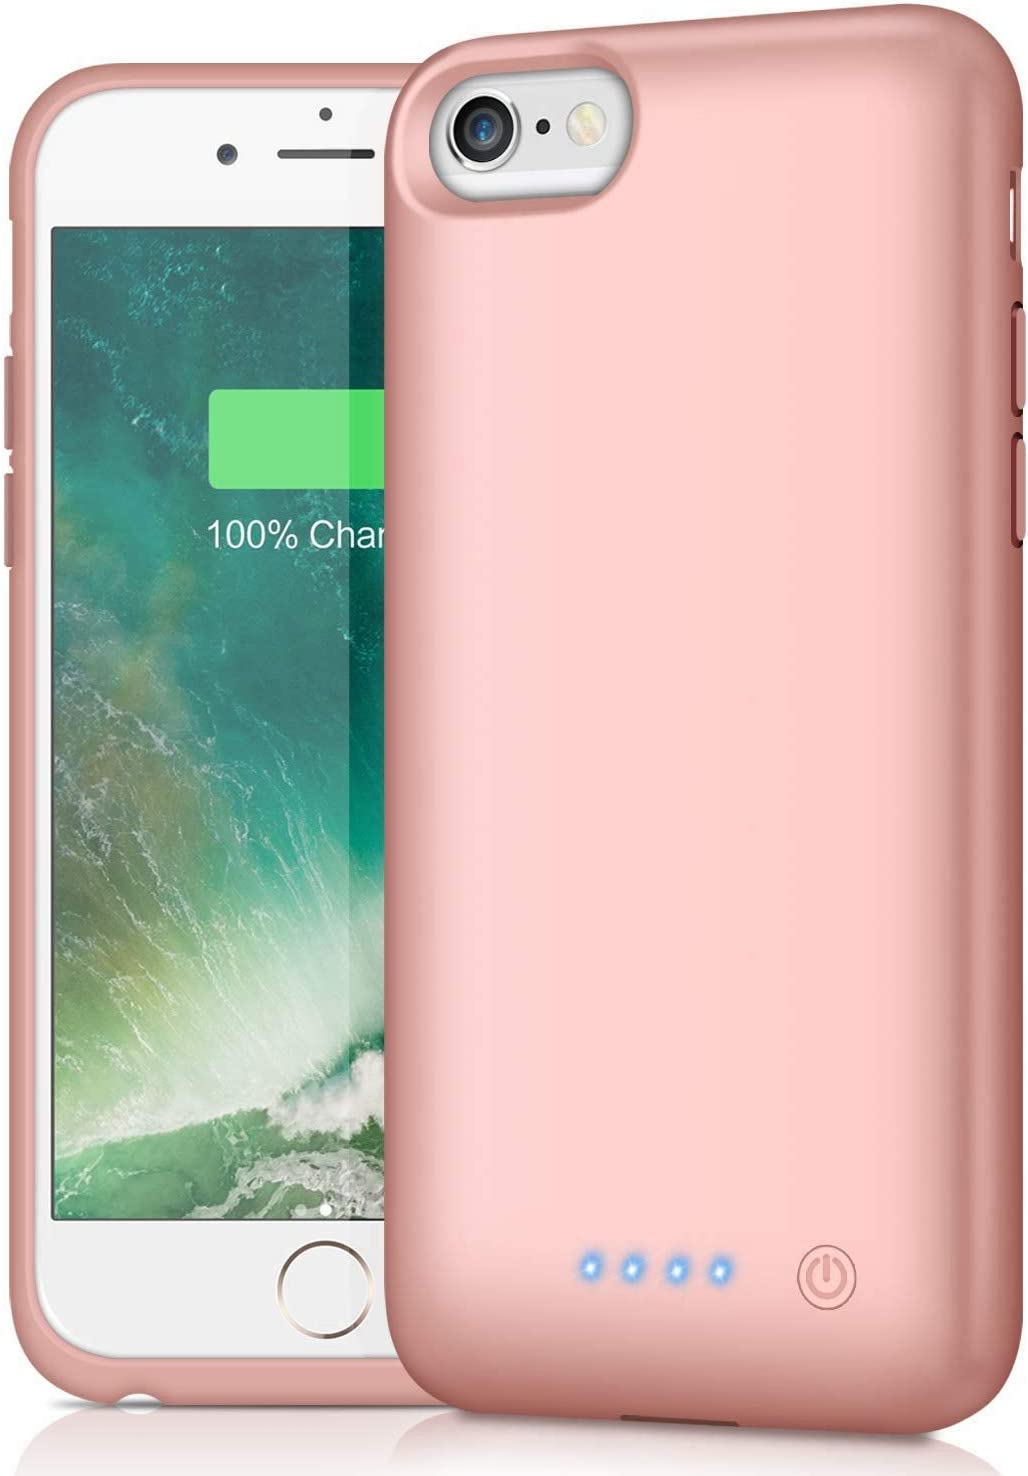 Gixvdcu Battery Case for iPhone 6/7/8/6S 6000mAh,Portable Charger Case Protective Battery Pack Charging Cover Case for iPhone 6/6s/7/8- Rose Gold (4.7inch)